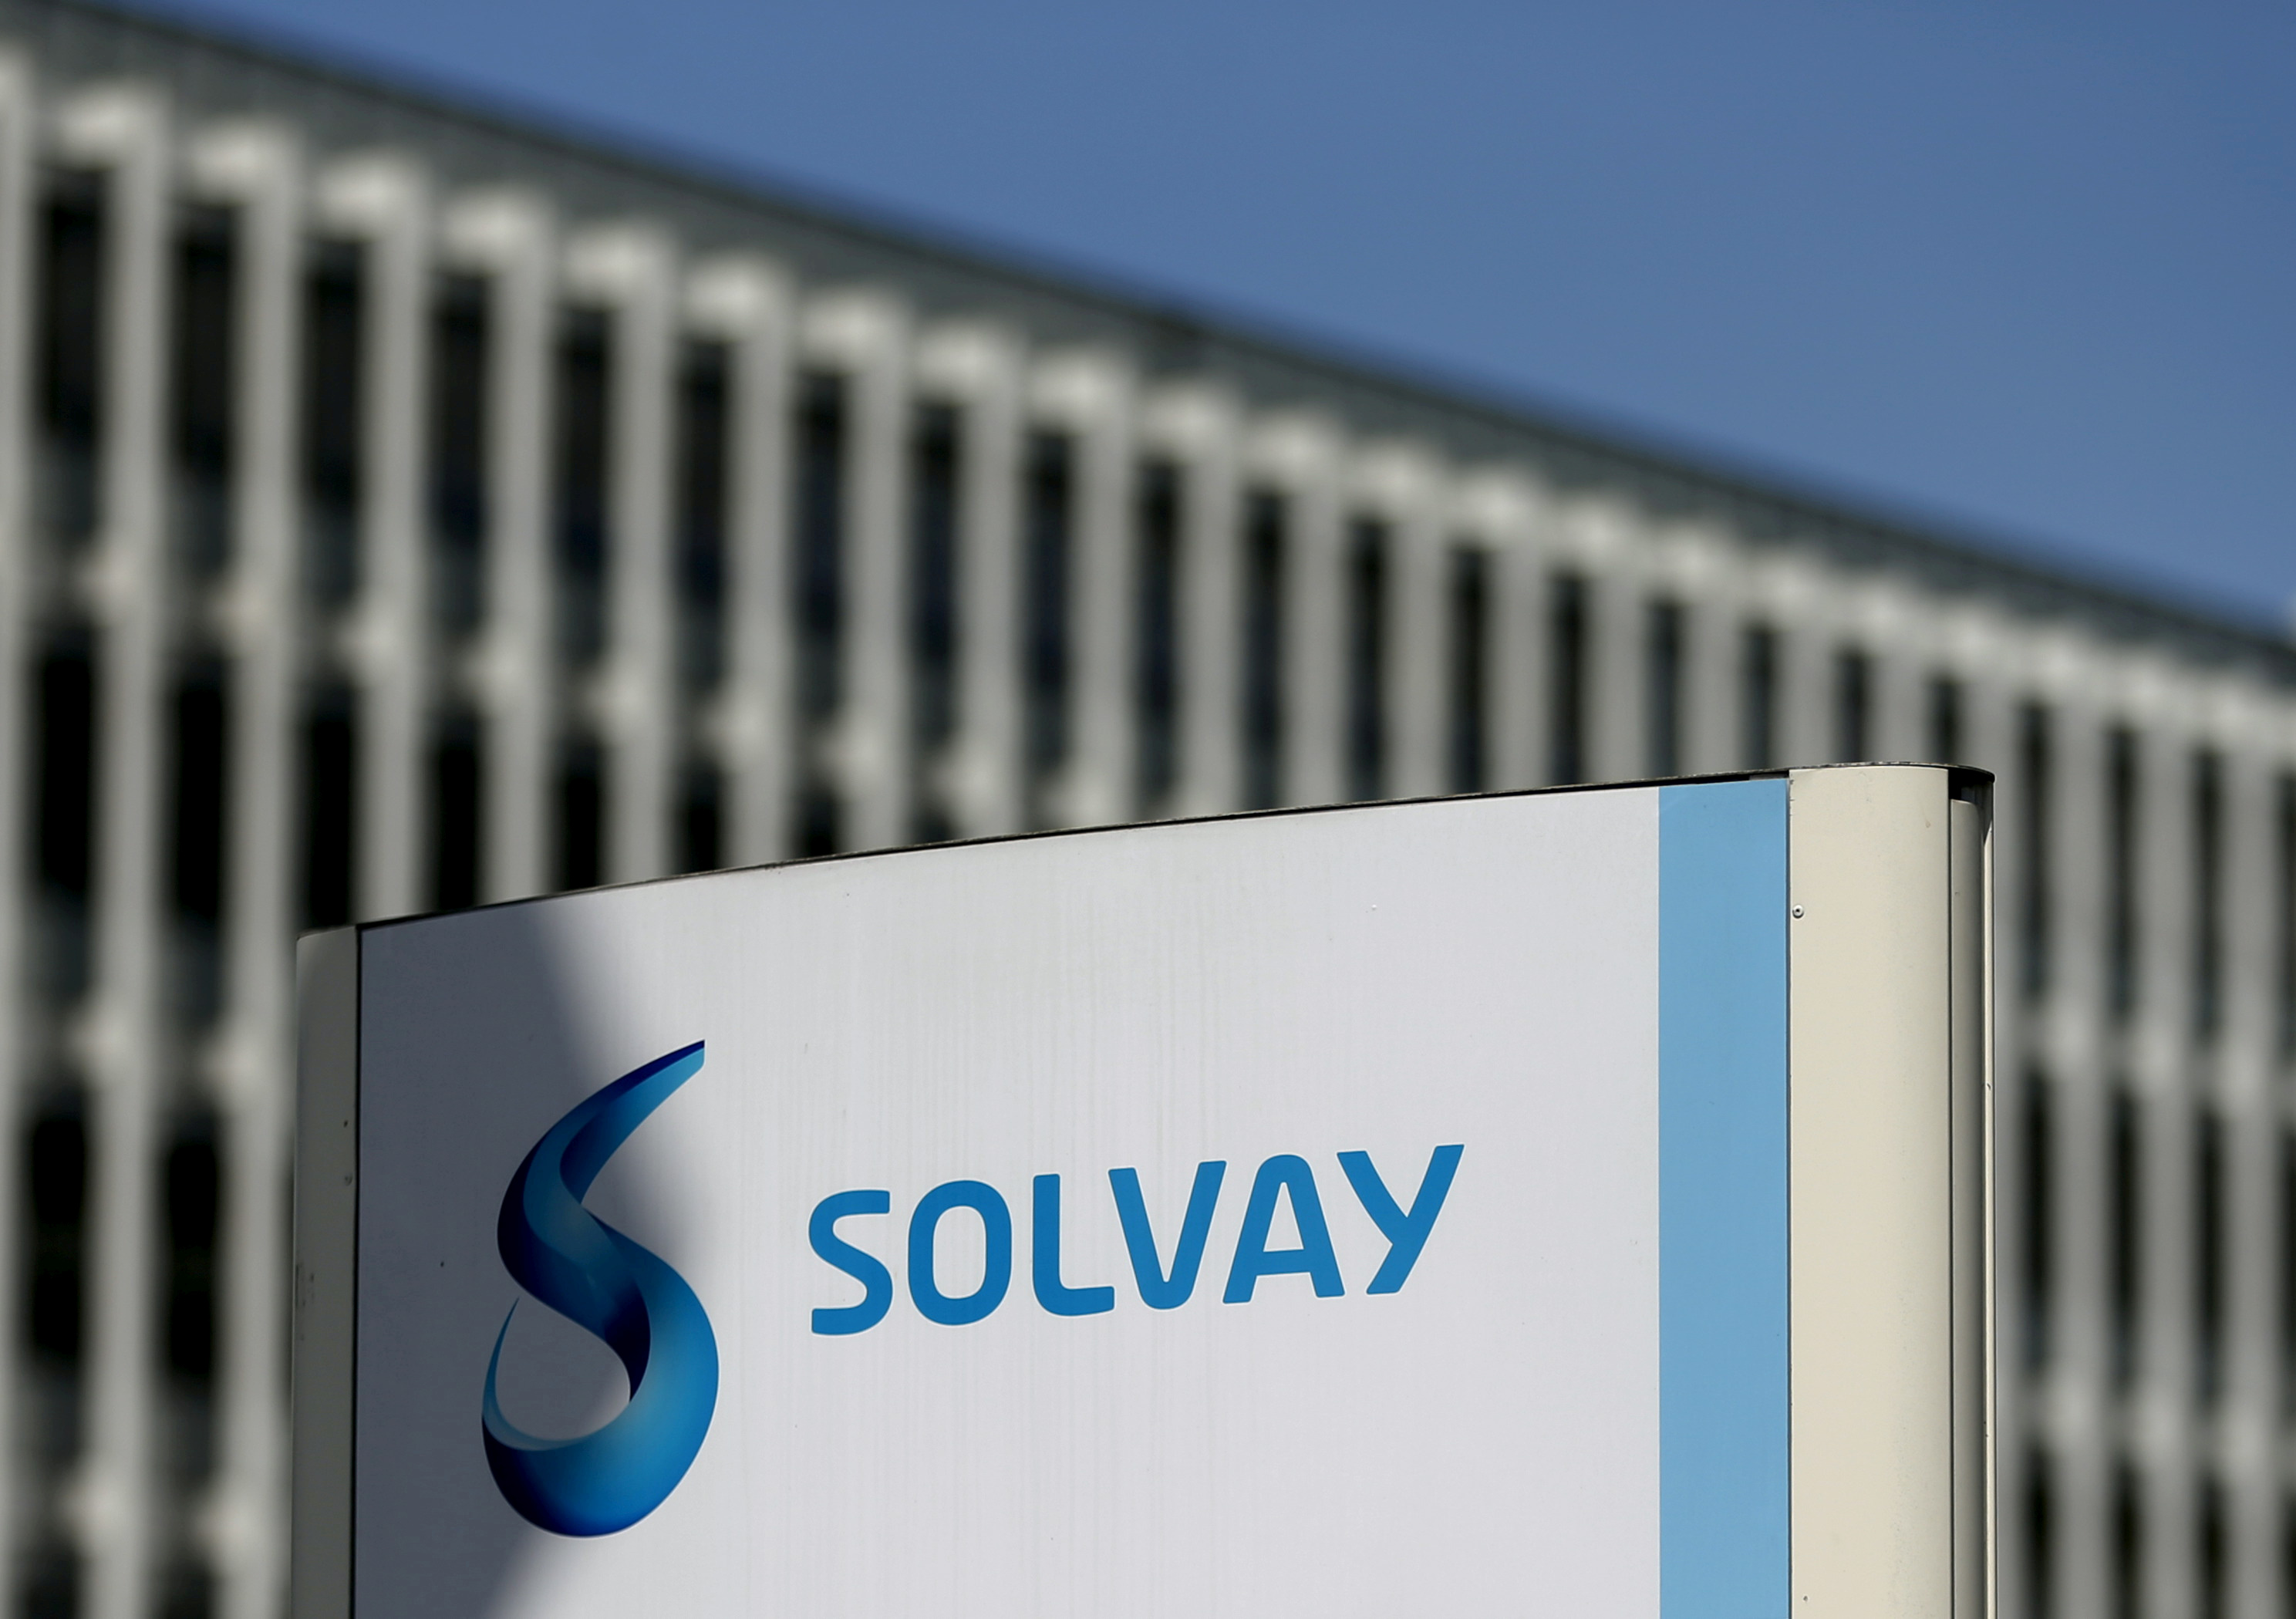 The logo of Belgian chemical group Solvay is seen at its headquarters in Brussels, Belgium, July 29, 2015. REUTERS/Francois Lenoir/File Photo